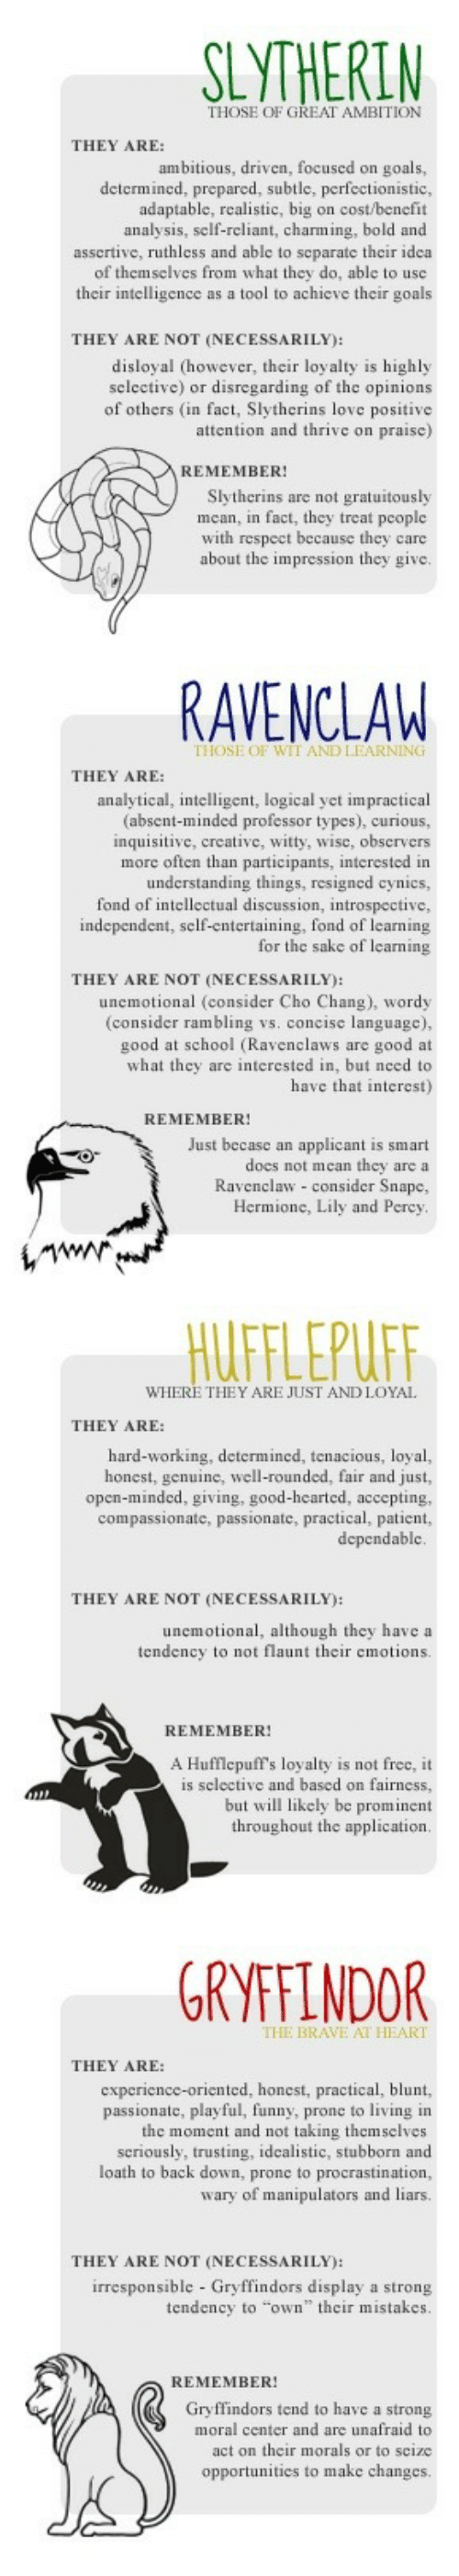 USC: SLYTHERIN  THOSE OF GREAT AMBITION  THEY ARE:  ambitious, driven, focused on goals,  determined, prepared, subtle, perfectionistic,  adaptable, realistic, big on cost/benefit  analysis, self-reliant, charming, bold and  assertive, ruthless and able to scparate their idea  selves from what they do, able to usc  their intelligence as a tool to achieve their goals  of them  THEY ARE NOT (NECESSARILY):  disloyal (however, their loy alty is highly  sclective) or disregarding of the opinions  of others (in fact, Slytherins love positive  attention and thrive on praisc)  REMEMBER!  Slytherins are not gratuitously  mean, in fact, they treat people  with respect because they care  about the impression they give   RAVENCLAW  HOSE OF WIT AND LEARNING  THEY ARE  analytical, intelligent, logical yet impractical  (absent-minded professor types), curious,  inquisitive, creative, witty, wise, observers  more often than participants, interested in  understanding things, resigned cynics,  fond of intellectual discussion, introspective  independent, self-entertaining, fond of learning  for the sake of learning  THEY ARE NOT (NECESSARILY):  unemotional (consider Cho Chang), wordy  (consider rambling vs. concise languagc),  good at school (Ravenclaws are good at  what they are interested in, but need to  have that interest)  REMEMBER!  Just becase an applicant is smart  does not mcan they are a  Ravenclaw consider Snape,  Hermione, Lily and Percy   HUFFLEPUFF  WHERE THEY ARE JUST AND LOYAL  THEY ARE:  hard-working, determined, tenacious, loyal,  honest, genuine, well-rounded, fair and just.,  open-minded, giving, good-hearted, accepting,  compassionate, passionate, practical, patient,  depcndablc  THEY ARE NOT (NECESSARILY):  uncmotional, although they have a  tendency to not flaunt their cmotions.  REMEMBER!  A Hufflepuffs loyalty is not frec, it  is selective and based on fairness,  but wil likely be prominent  throughout the application.   GRYFFINDOR  THE BRAVE AT HEART  THEY AR